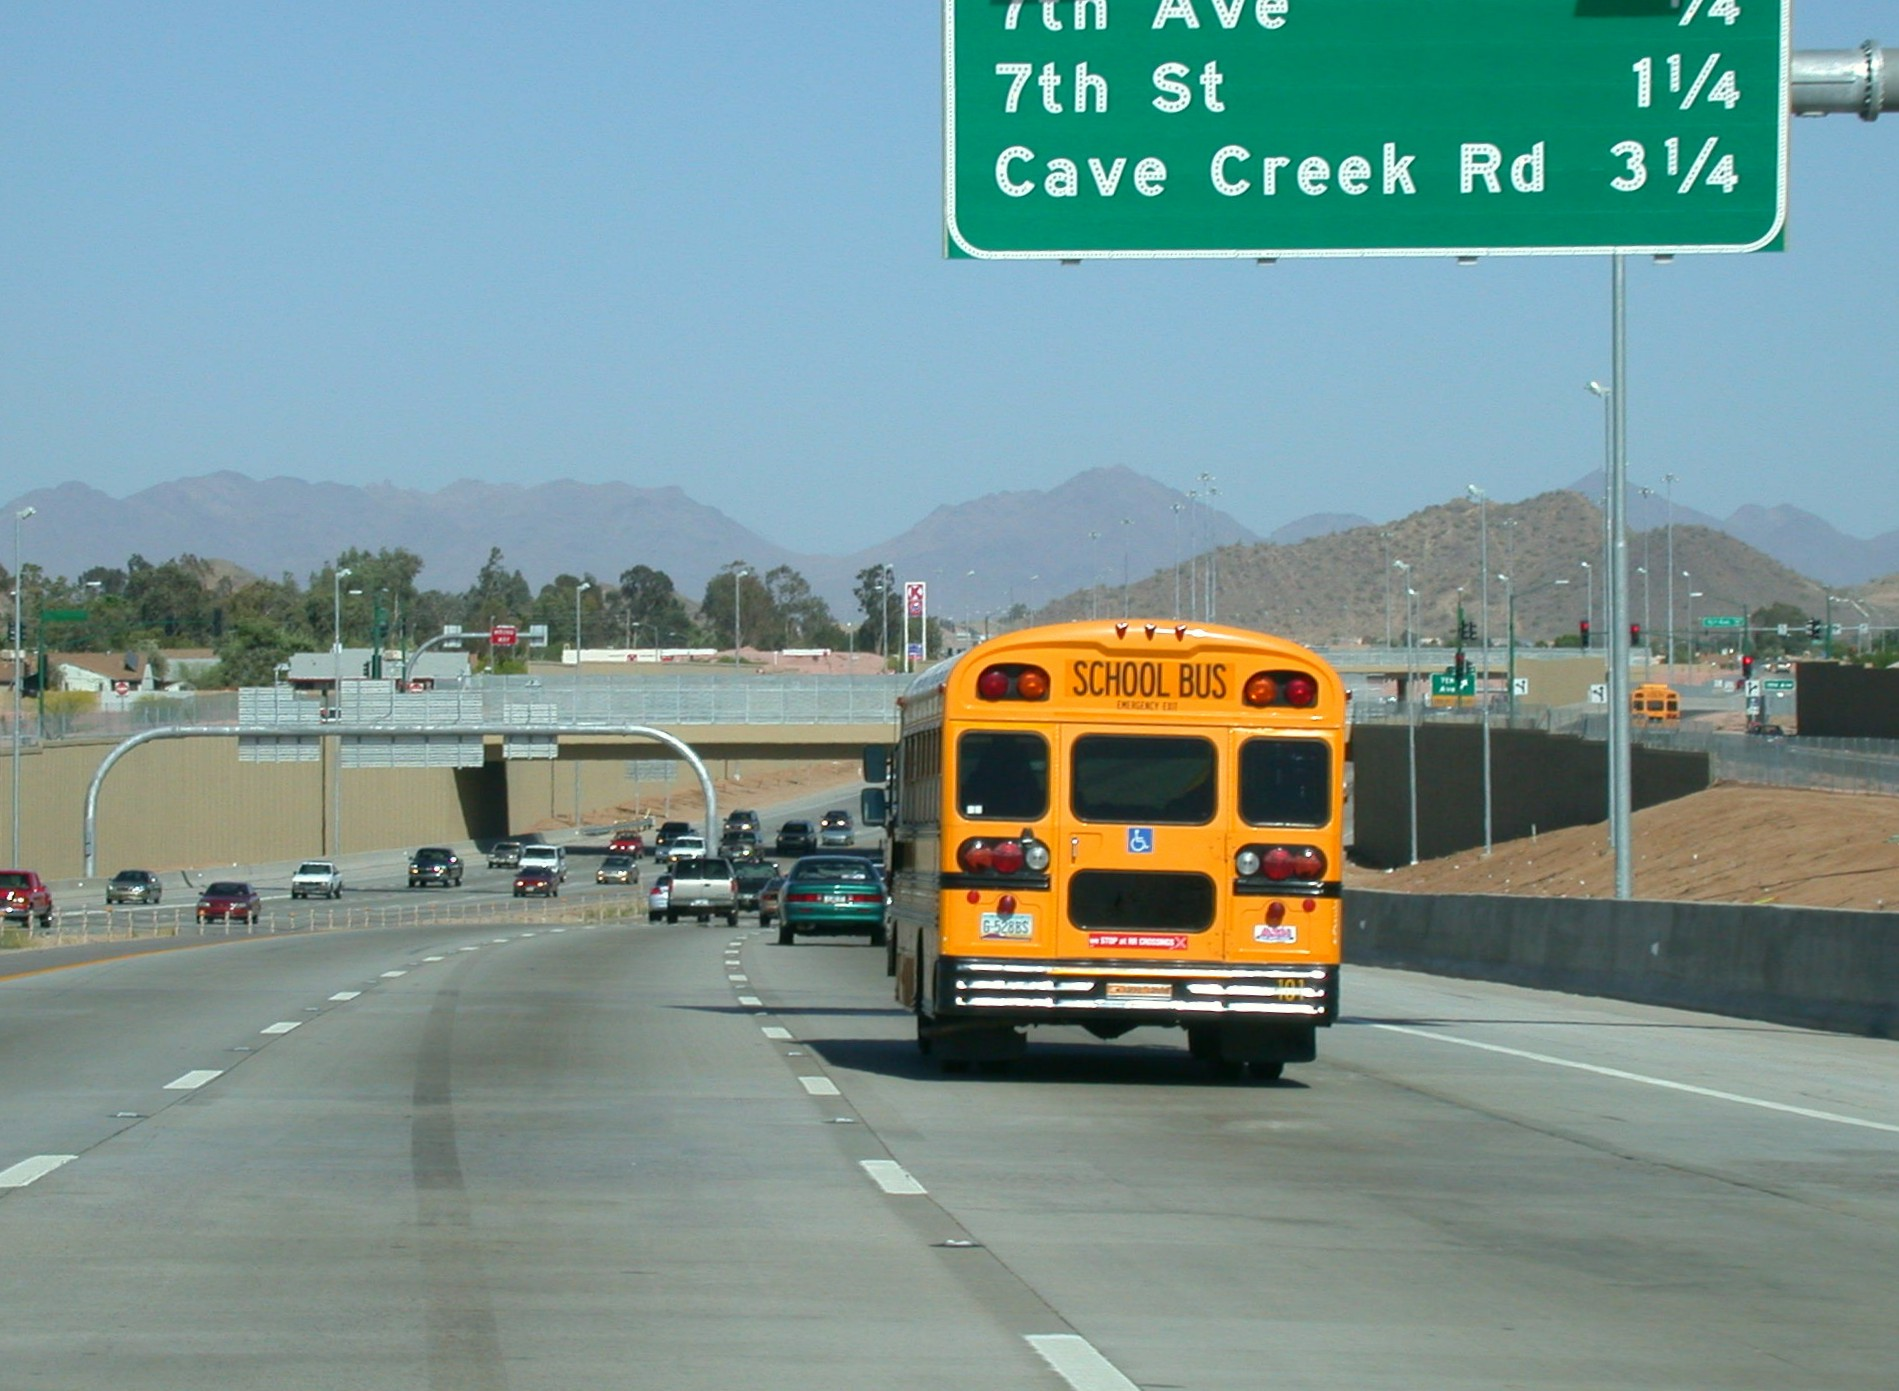 School bus traveling on a freeway